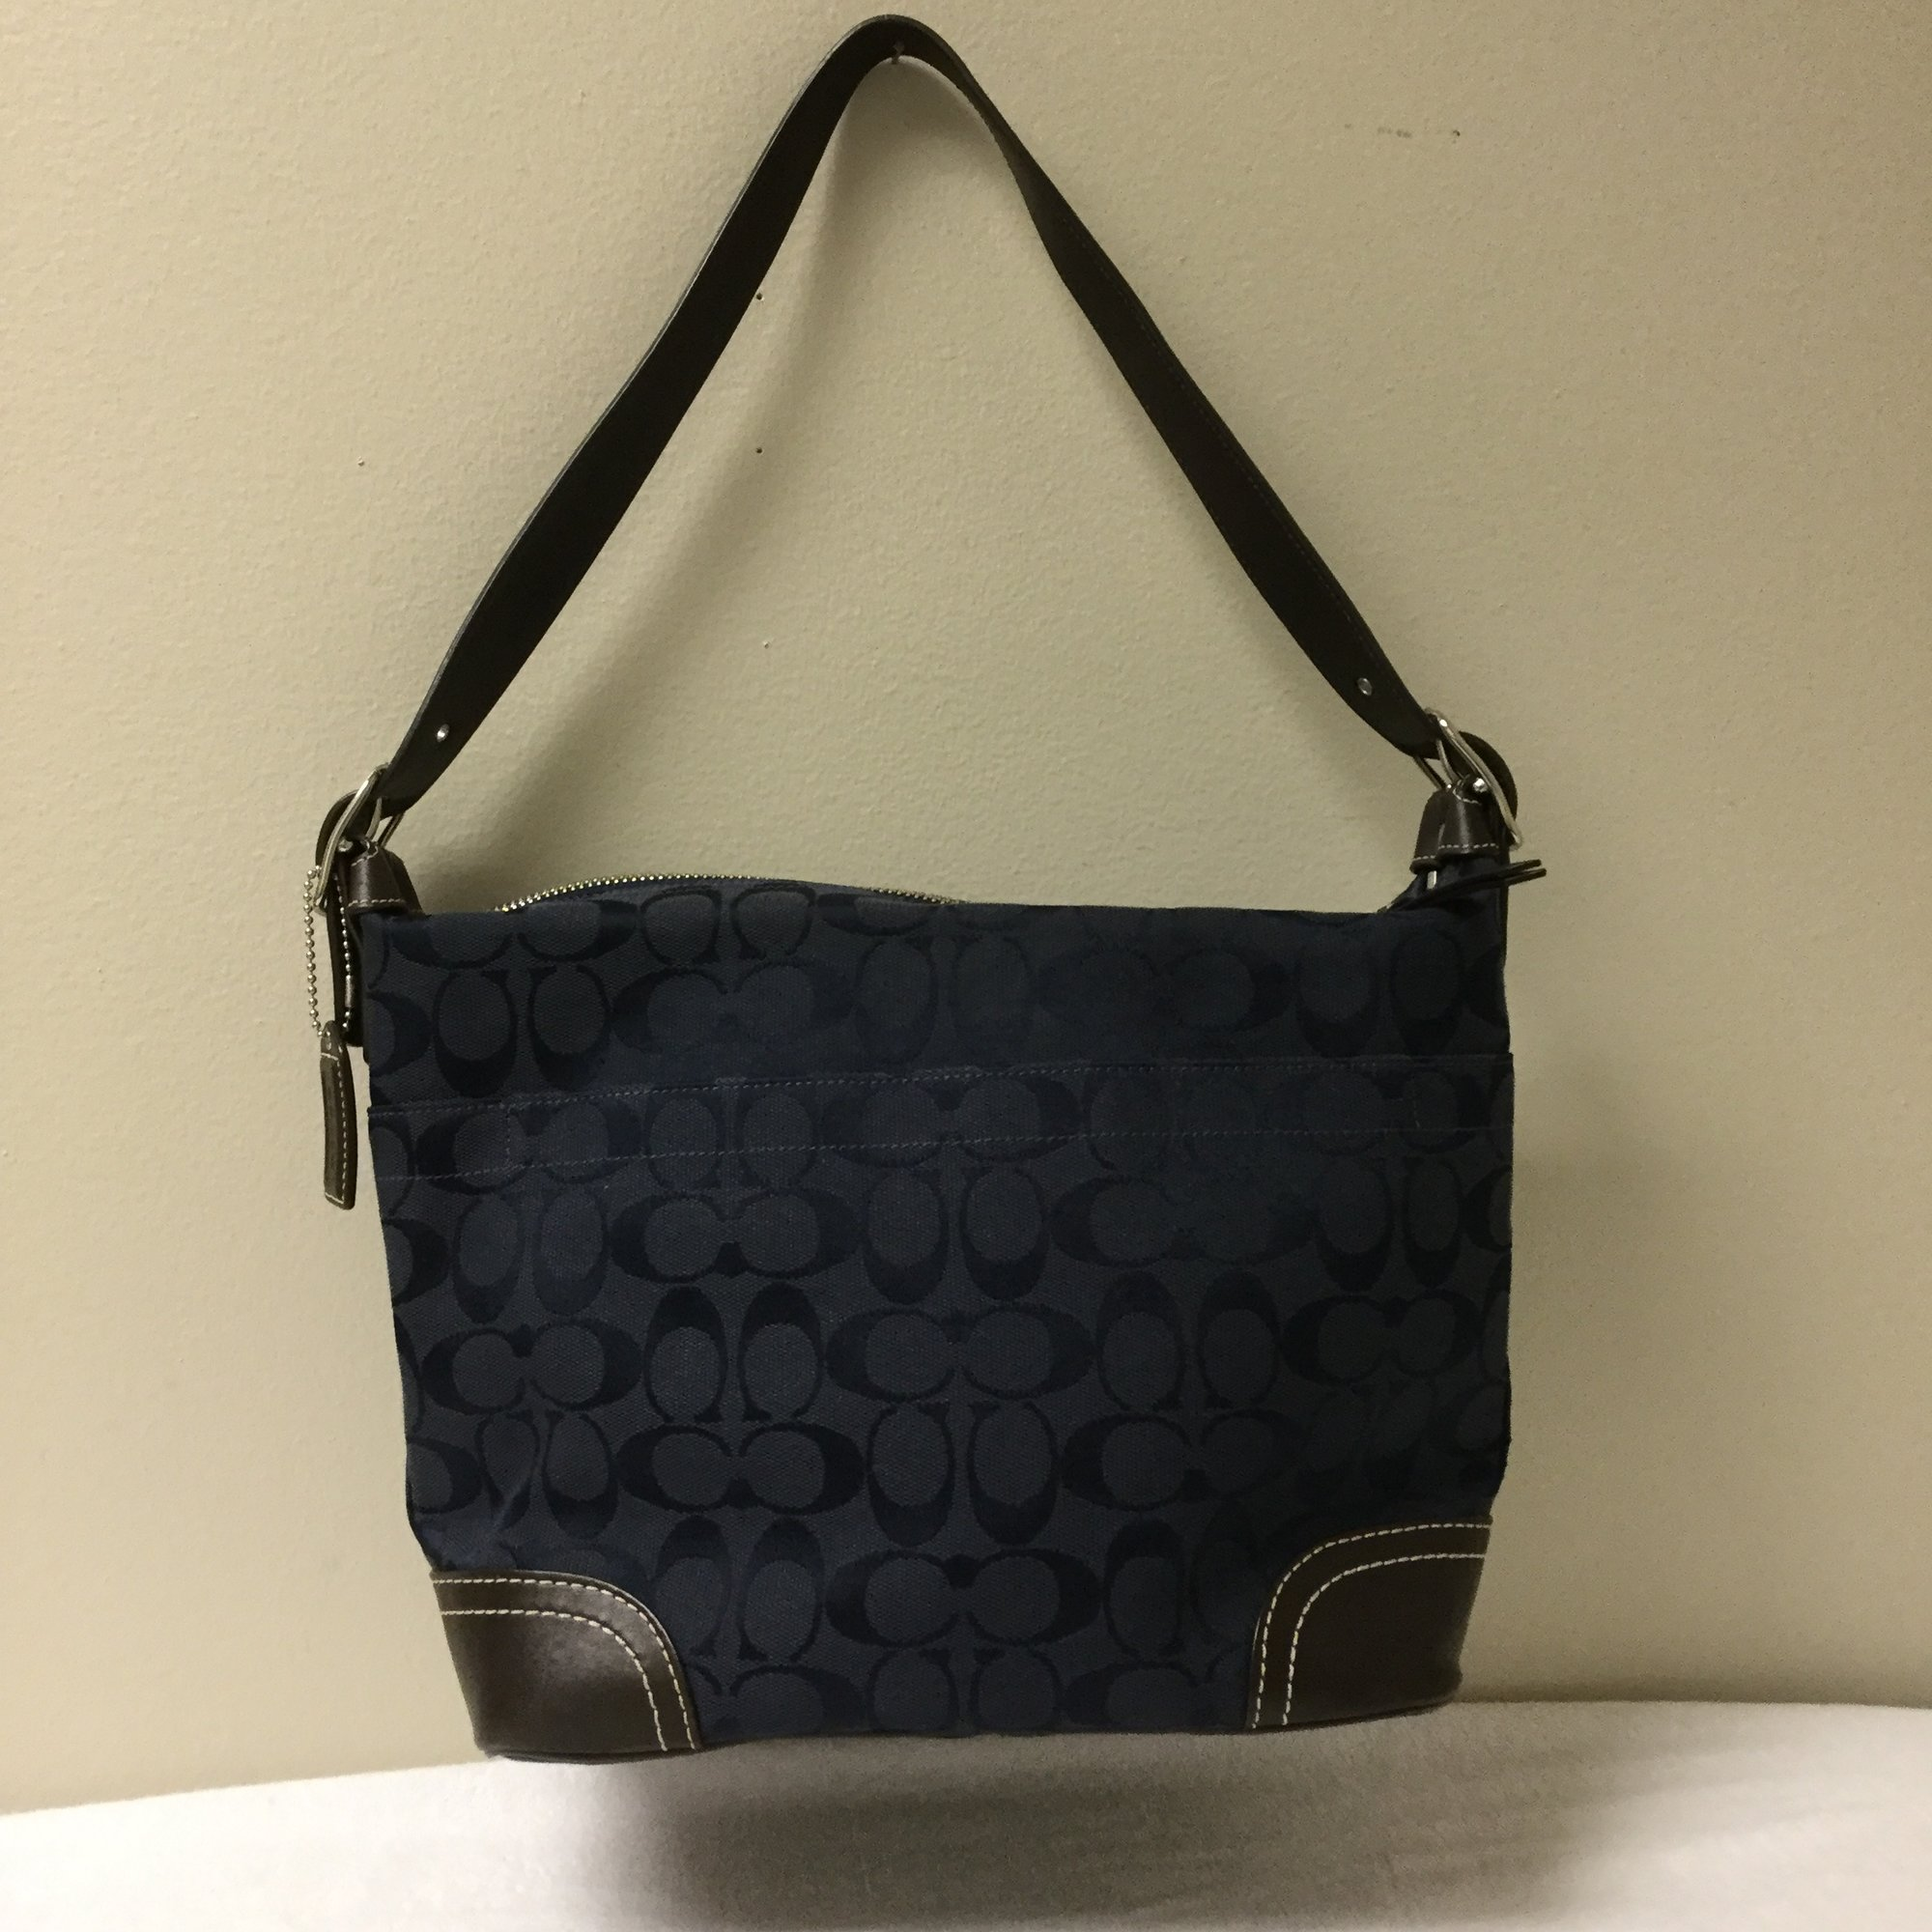 Coach One Handle Logo<br /> Size M<br /> Navy/Brown<br /> $53.00